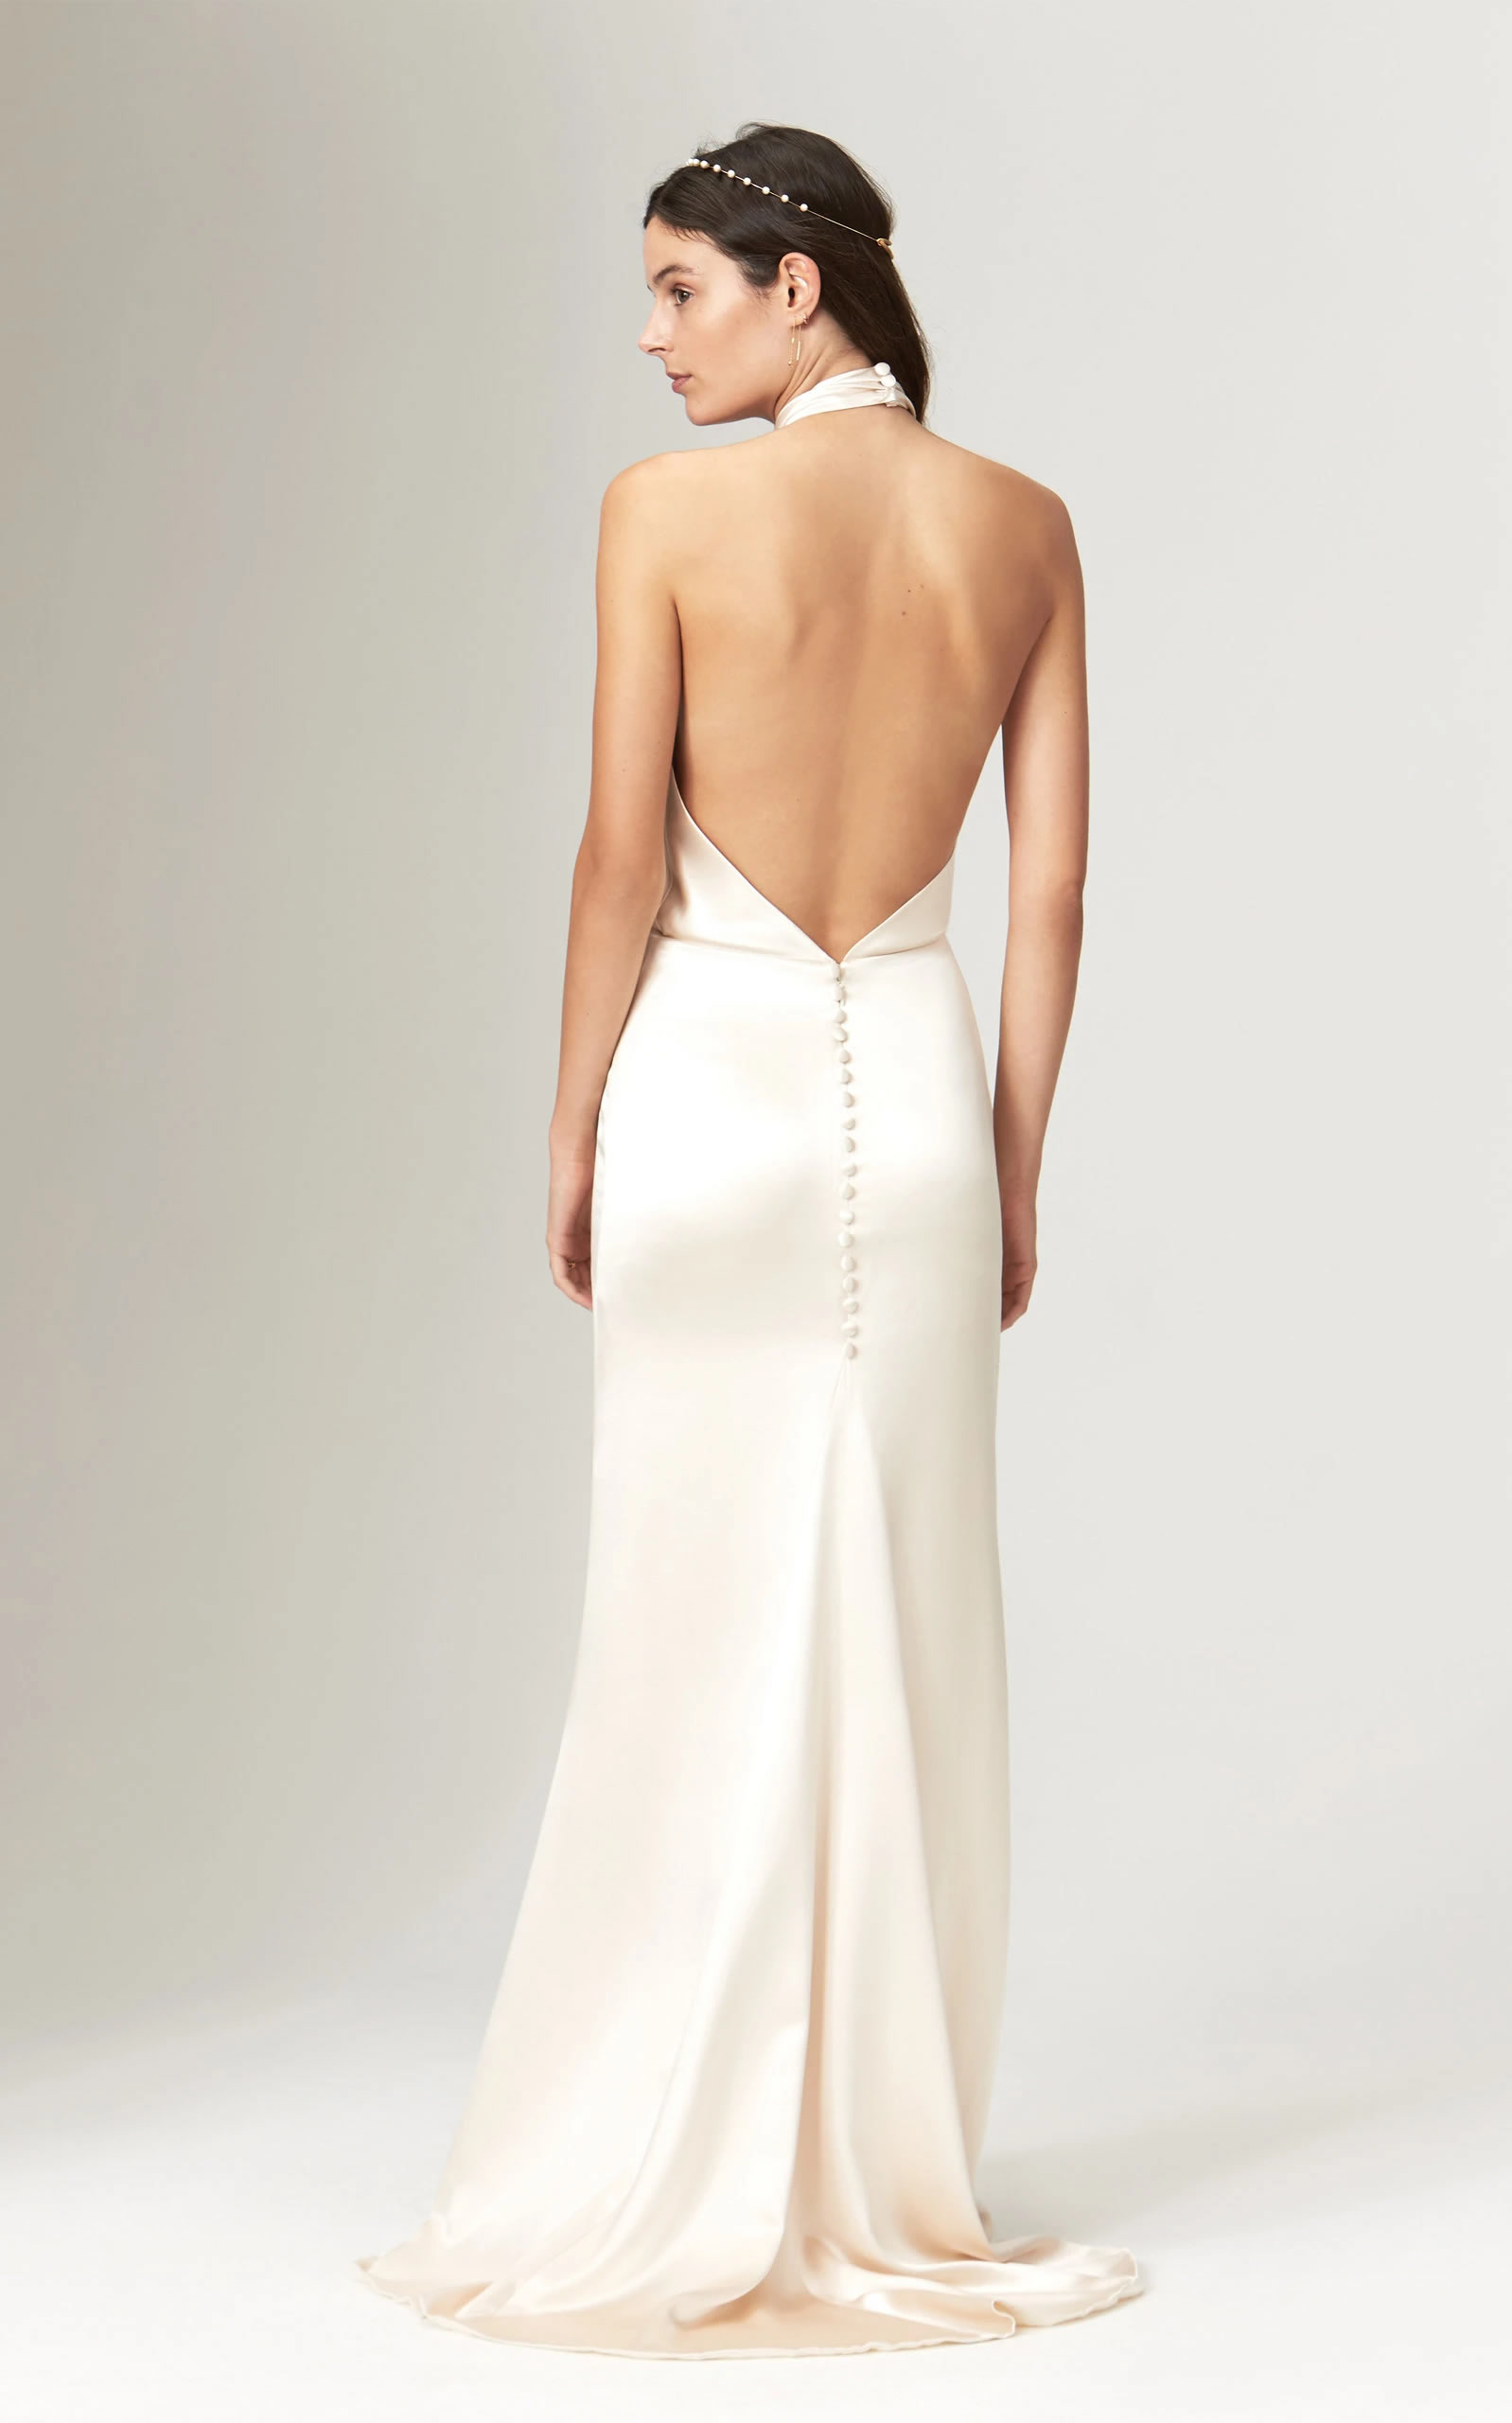 Savannah Miller - Ruby Silk Twisted Halter Neck Backless Gown With Train